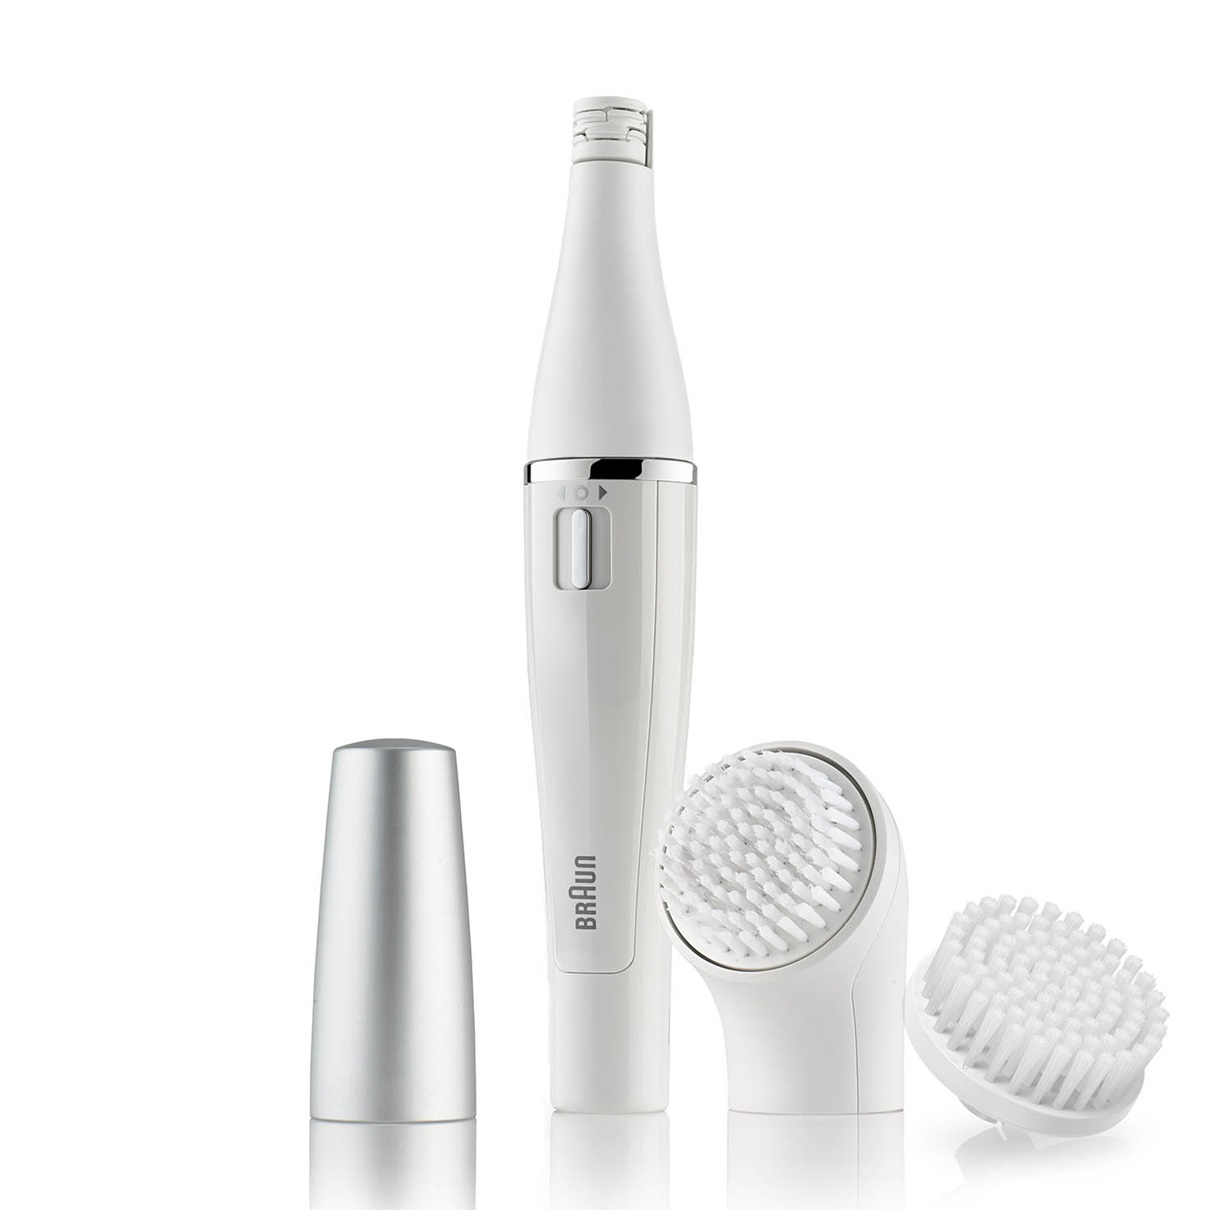 Braun Face 820 - facial epilator & facial cleansing brush with micro-oscillations - including 1 extra brush refill